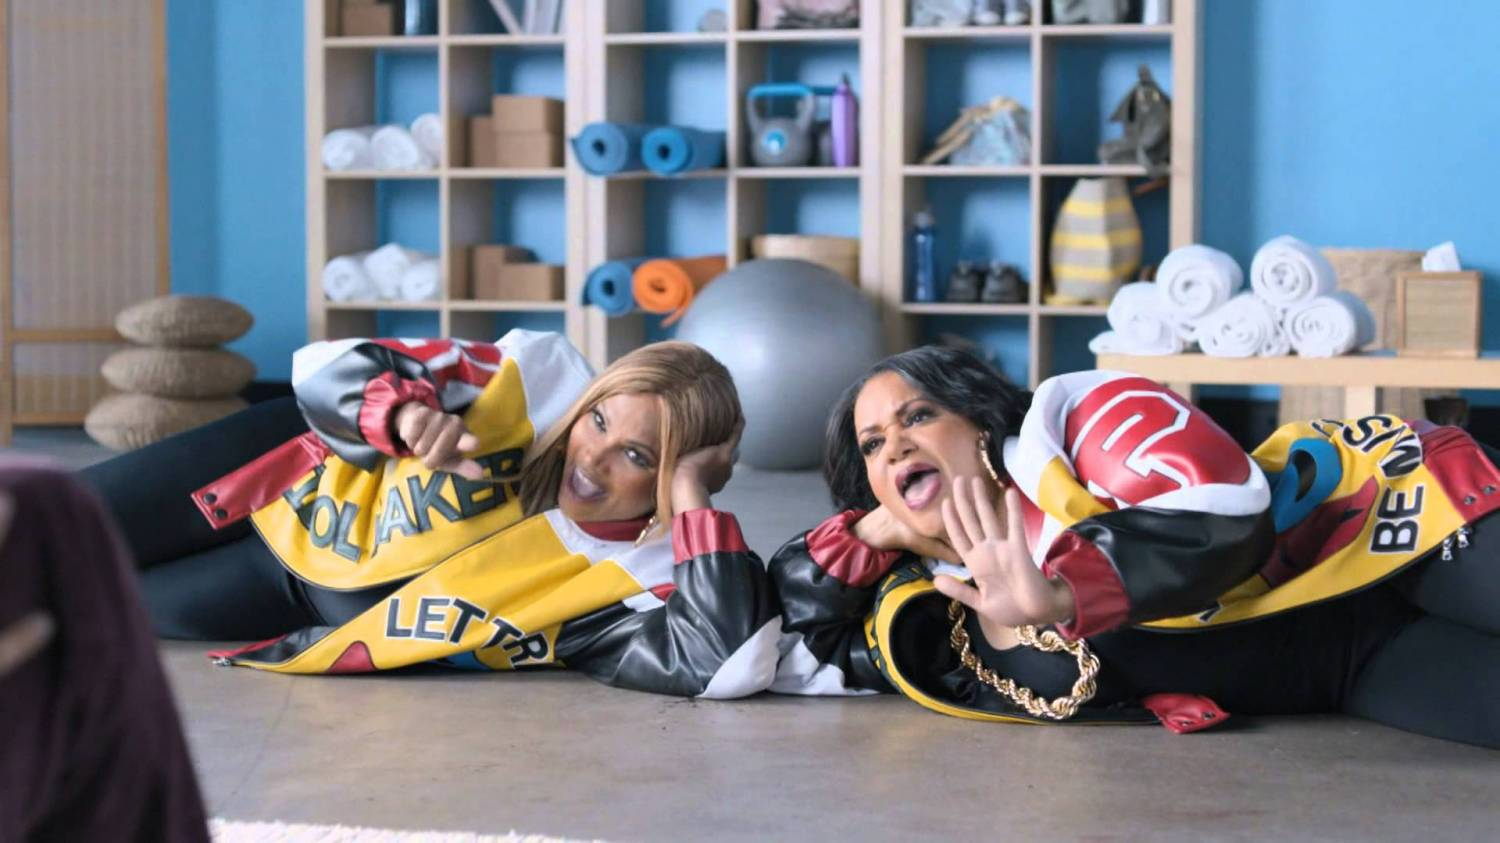 Музыка и видеоролик из рекламы GEICO - Push It - It's What You Do (Salt-N-Pepa)